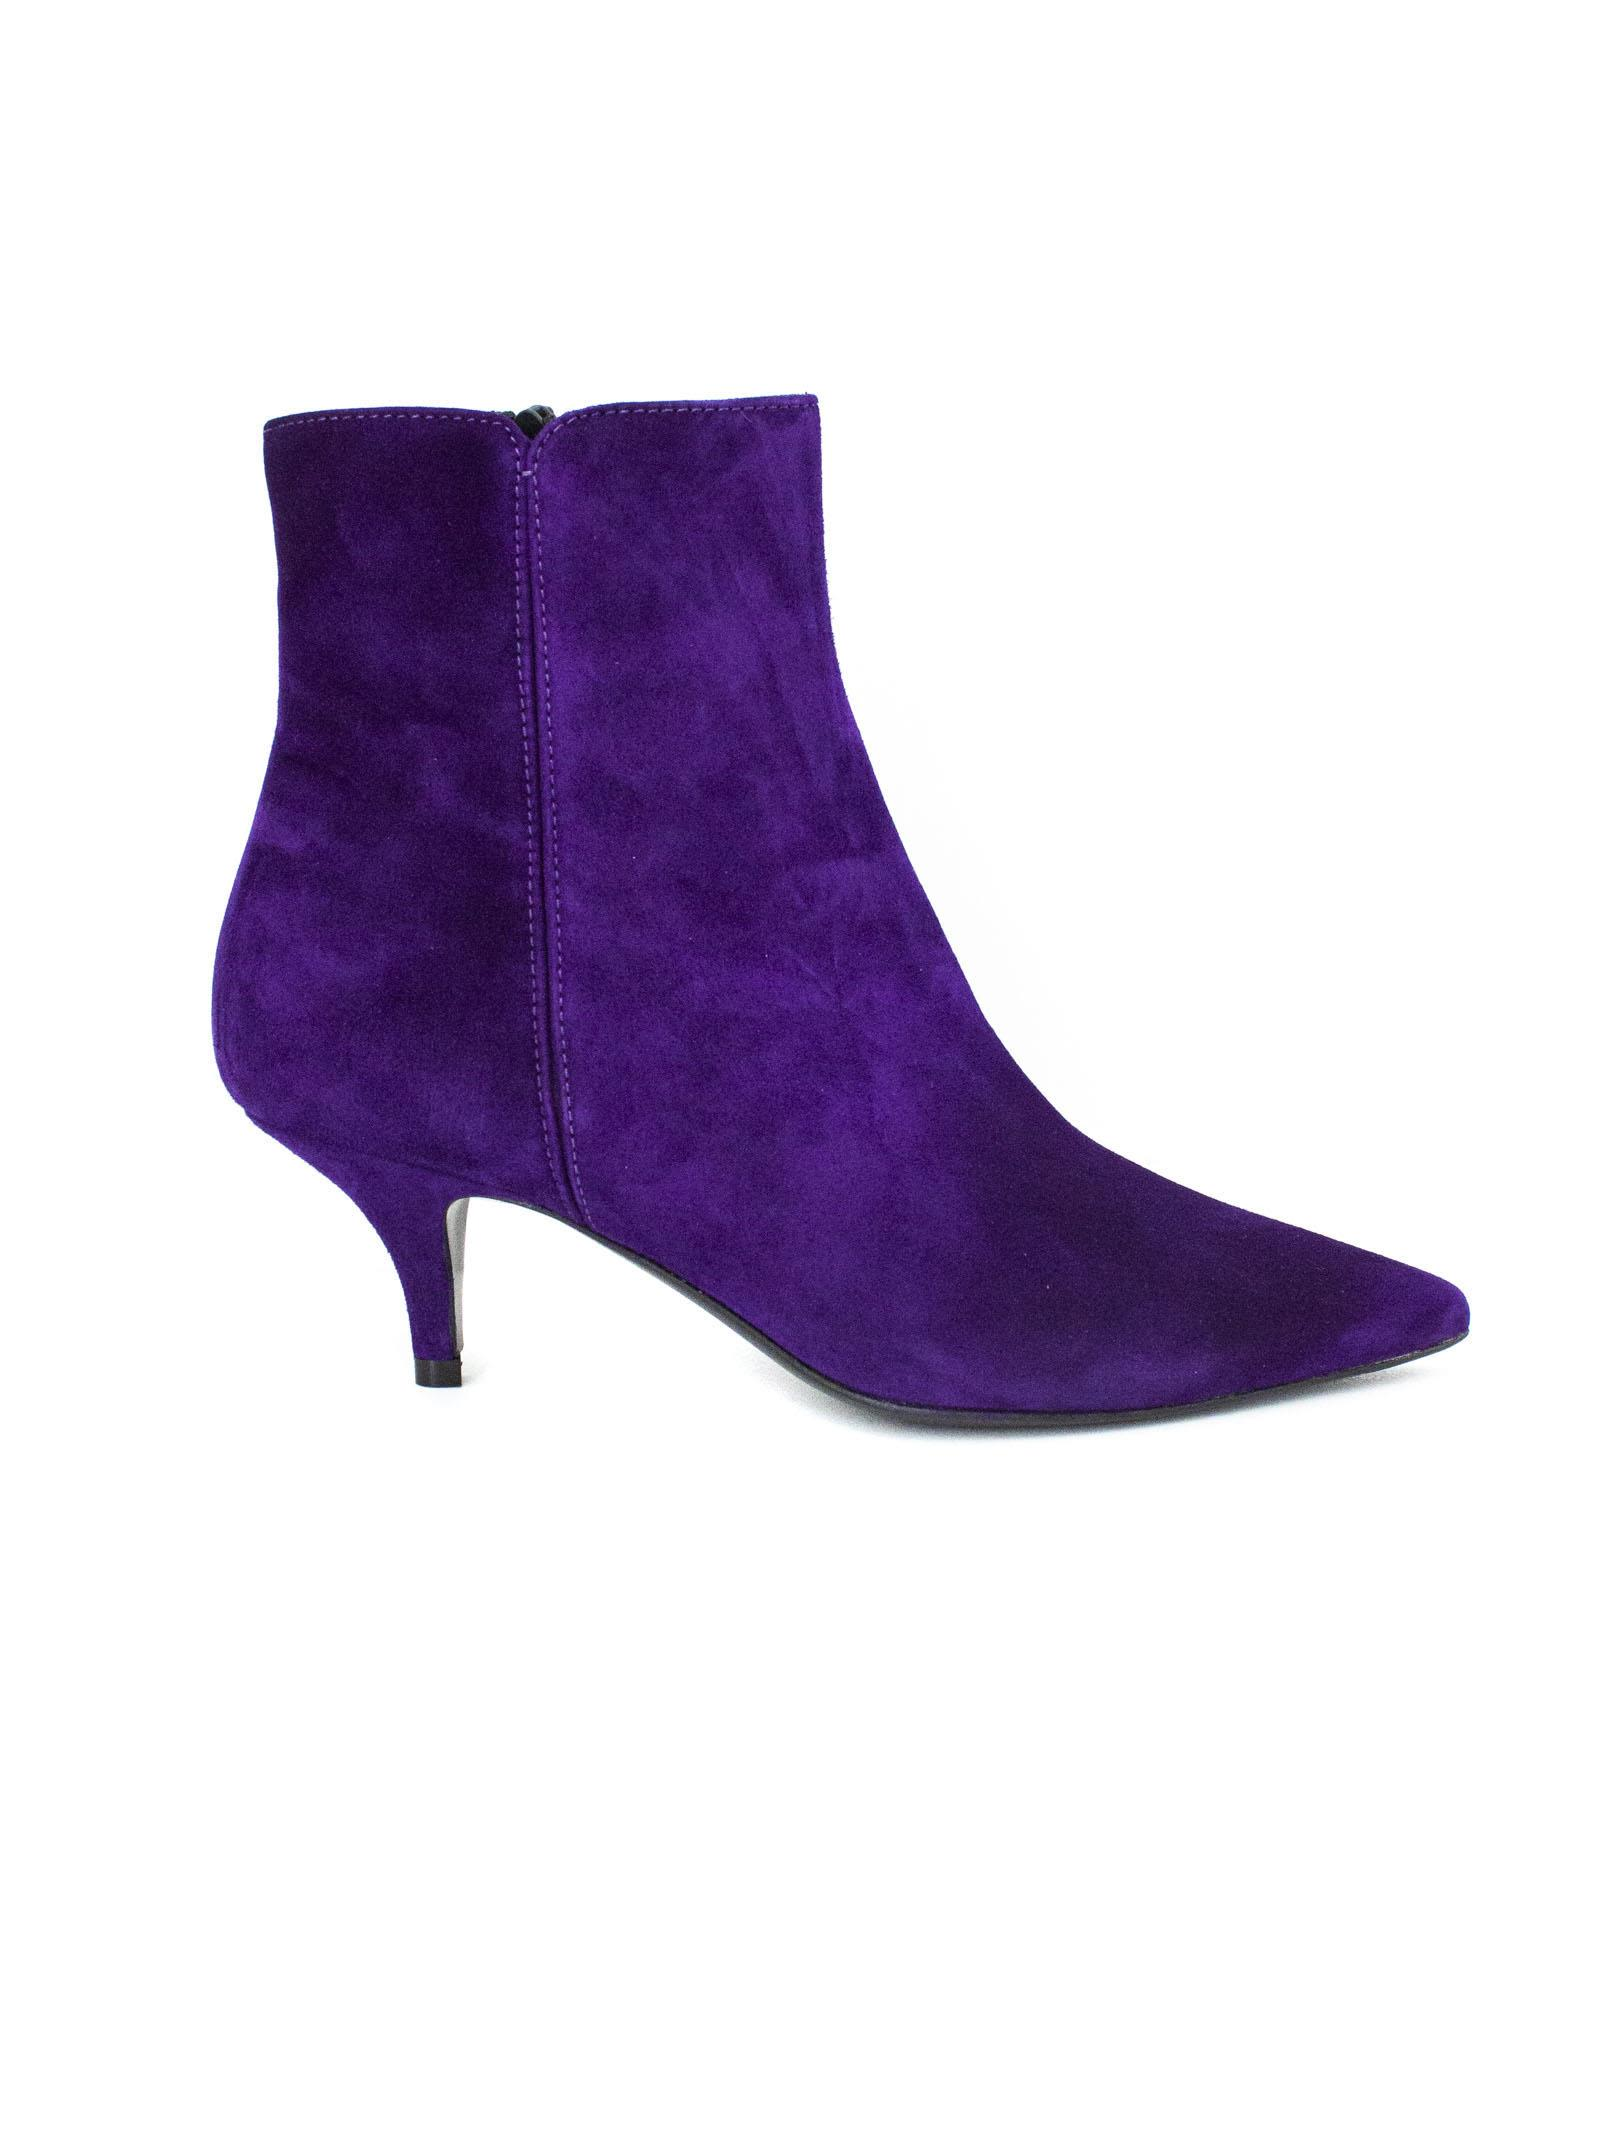 ROBERTO FESTA Purple Suede Leather Oxford Ankle Boots. in Viola